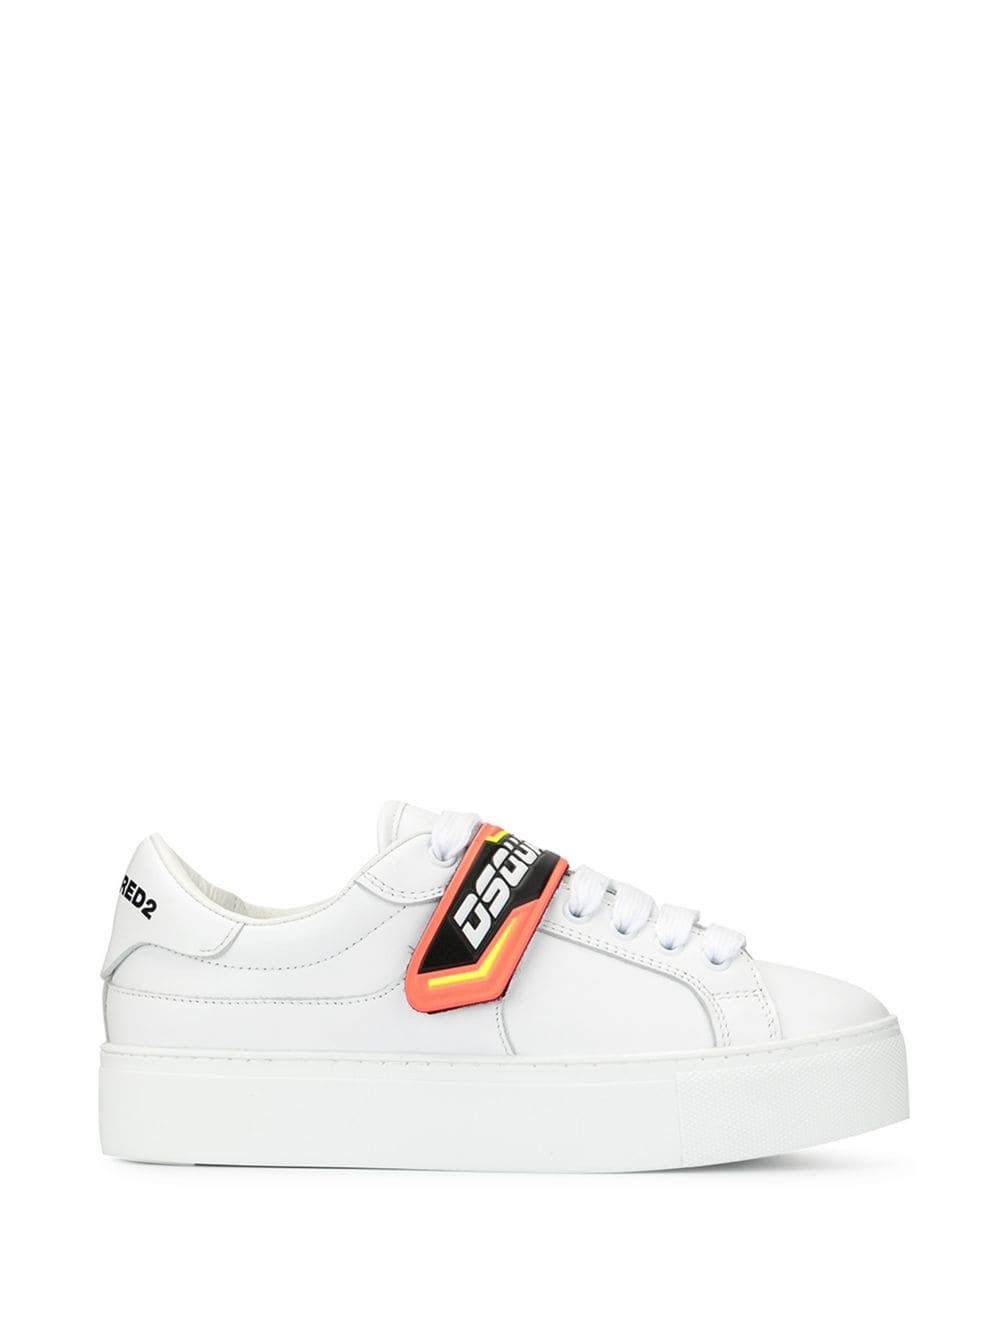 DSQUARED2 Women's Strap Sneaker | Maison De Fashion